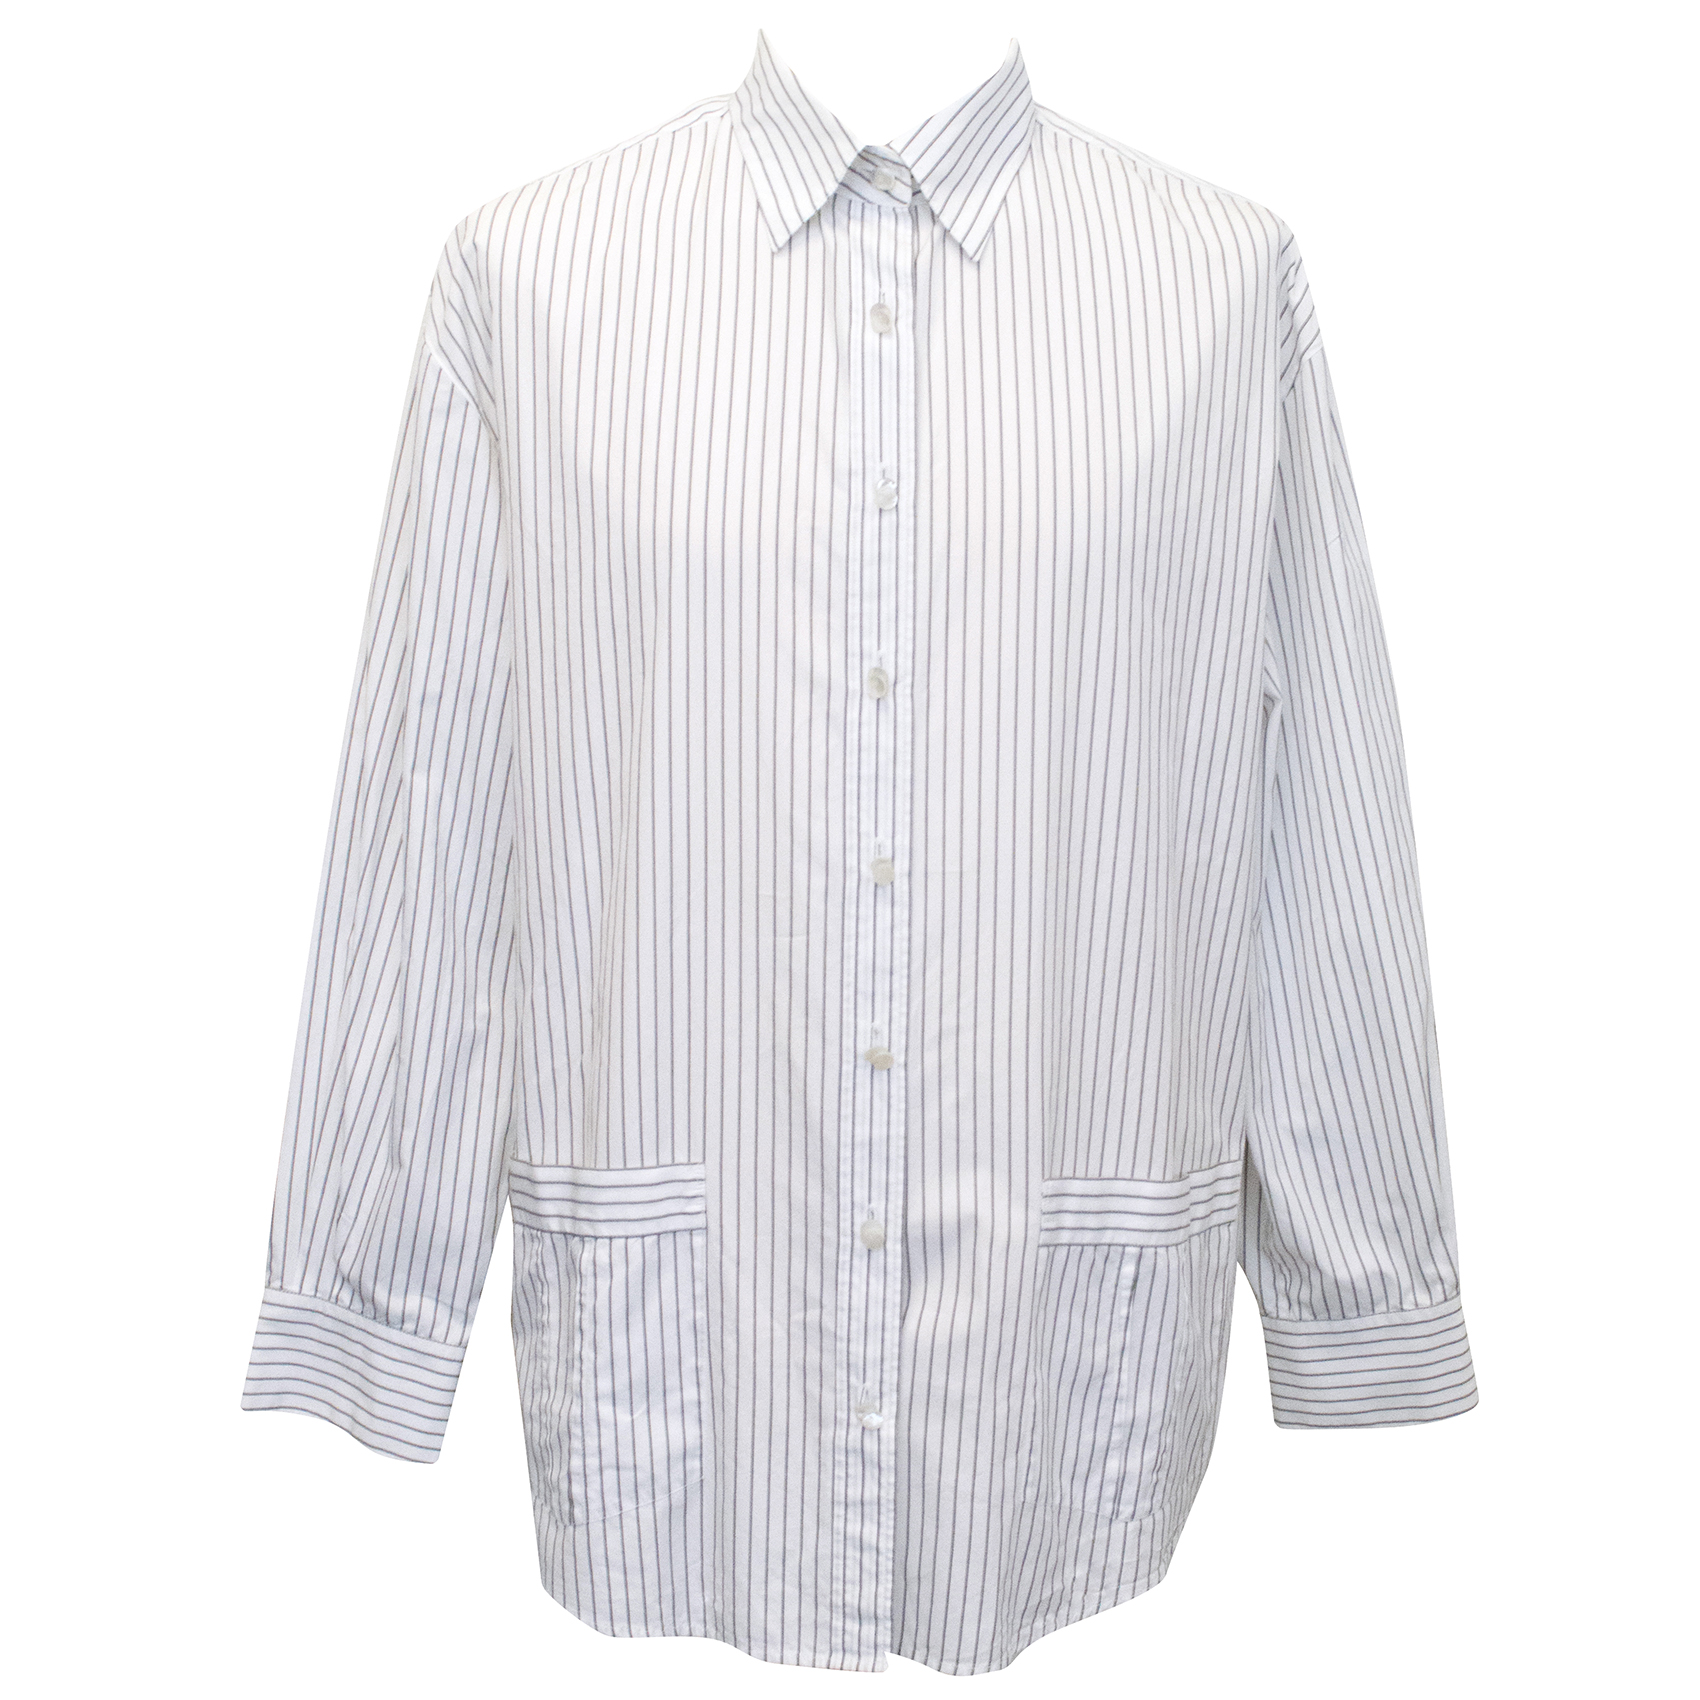 Chanel White and Black Striped Button Down Shirt